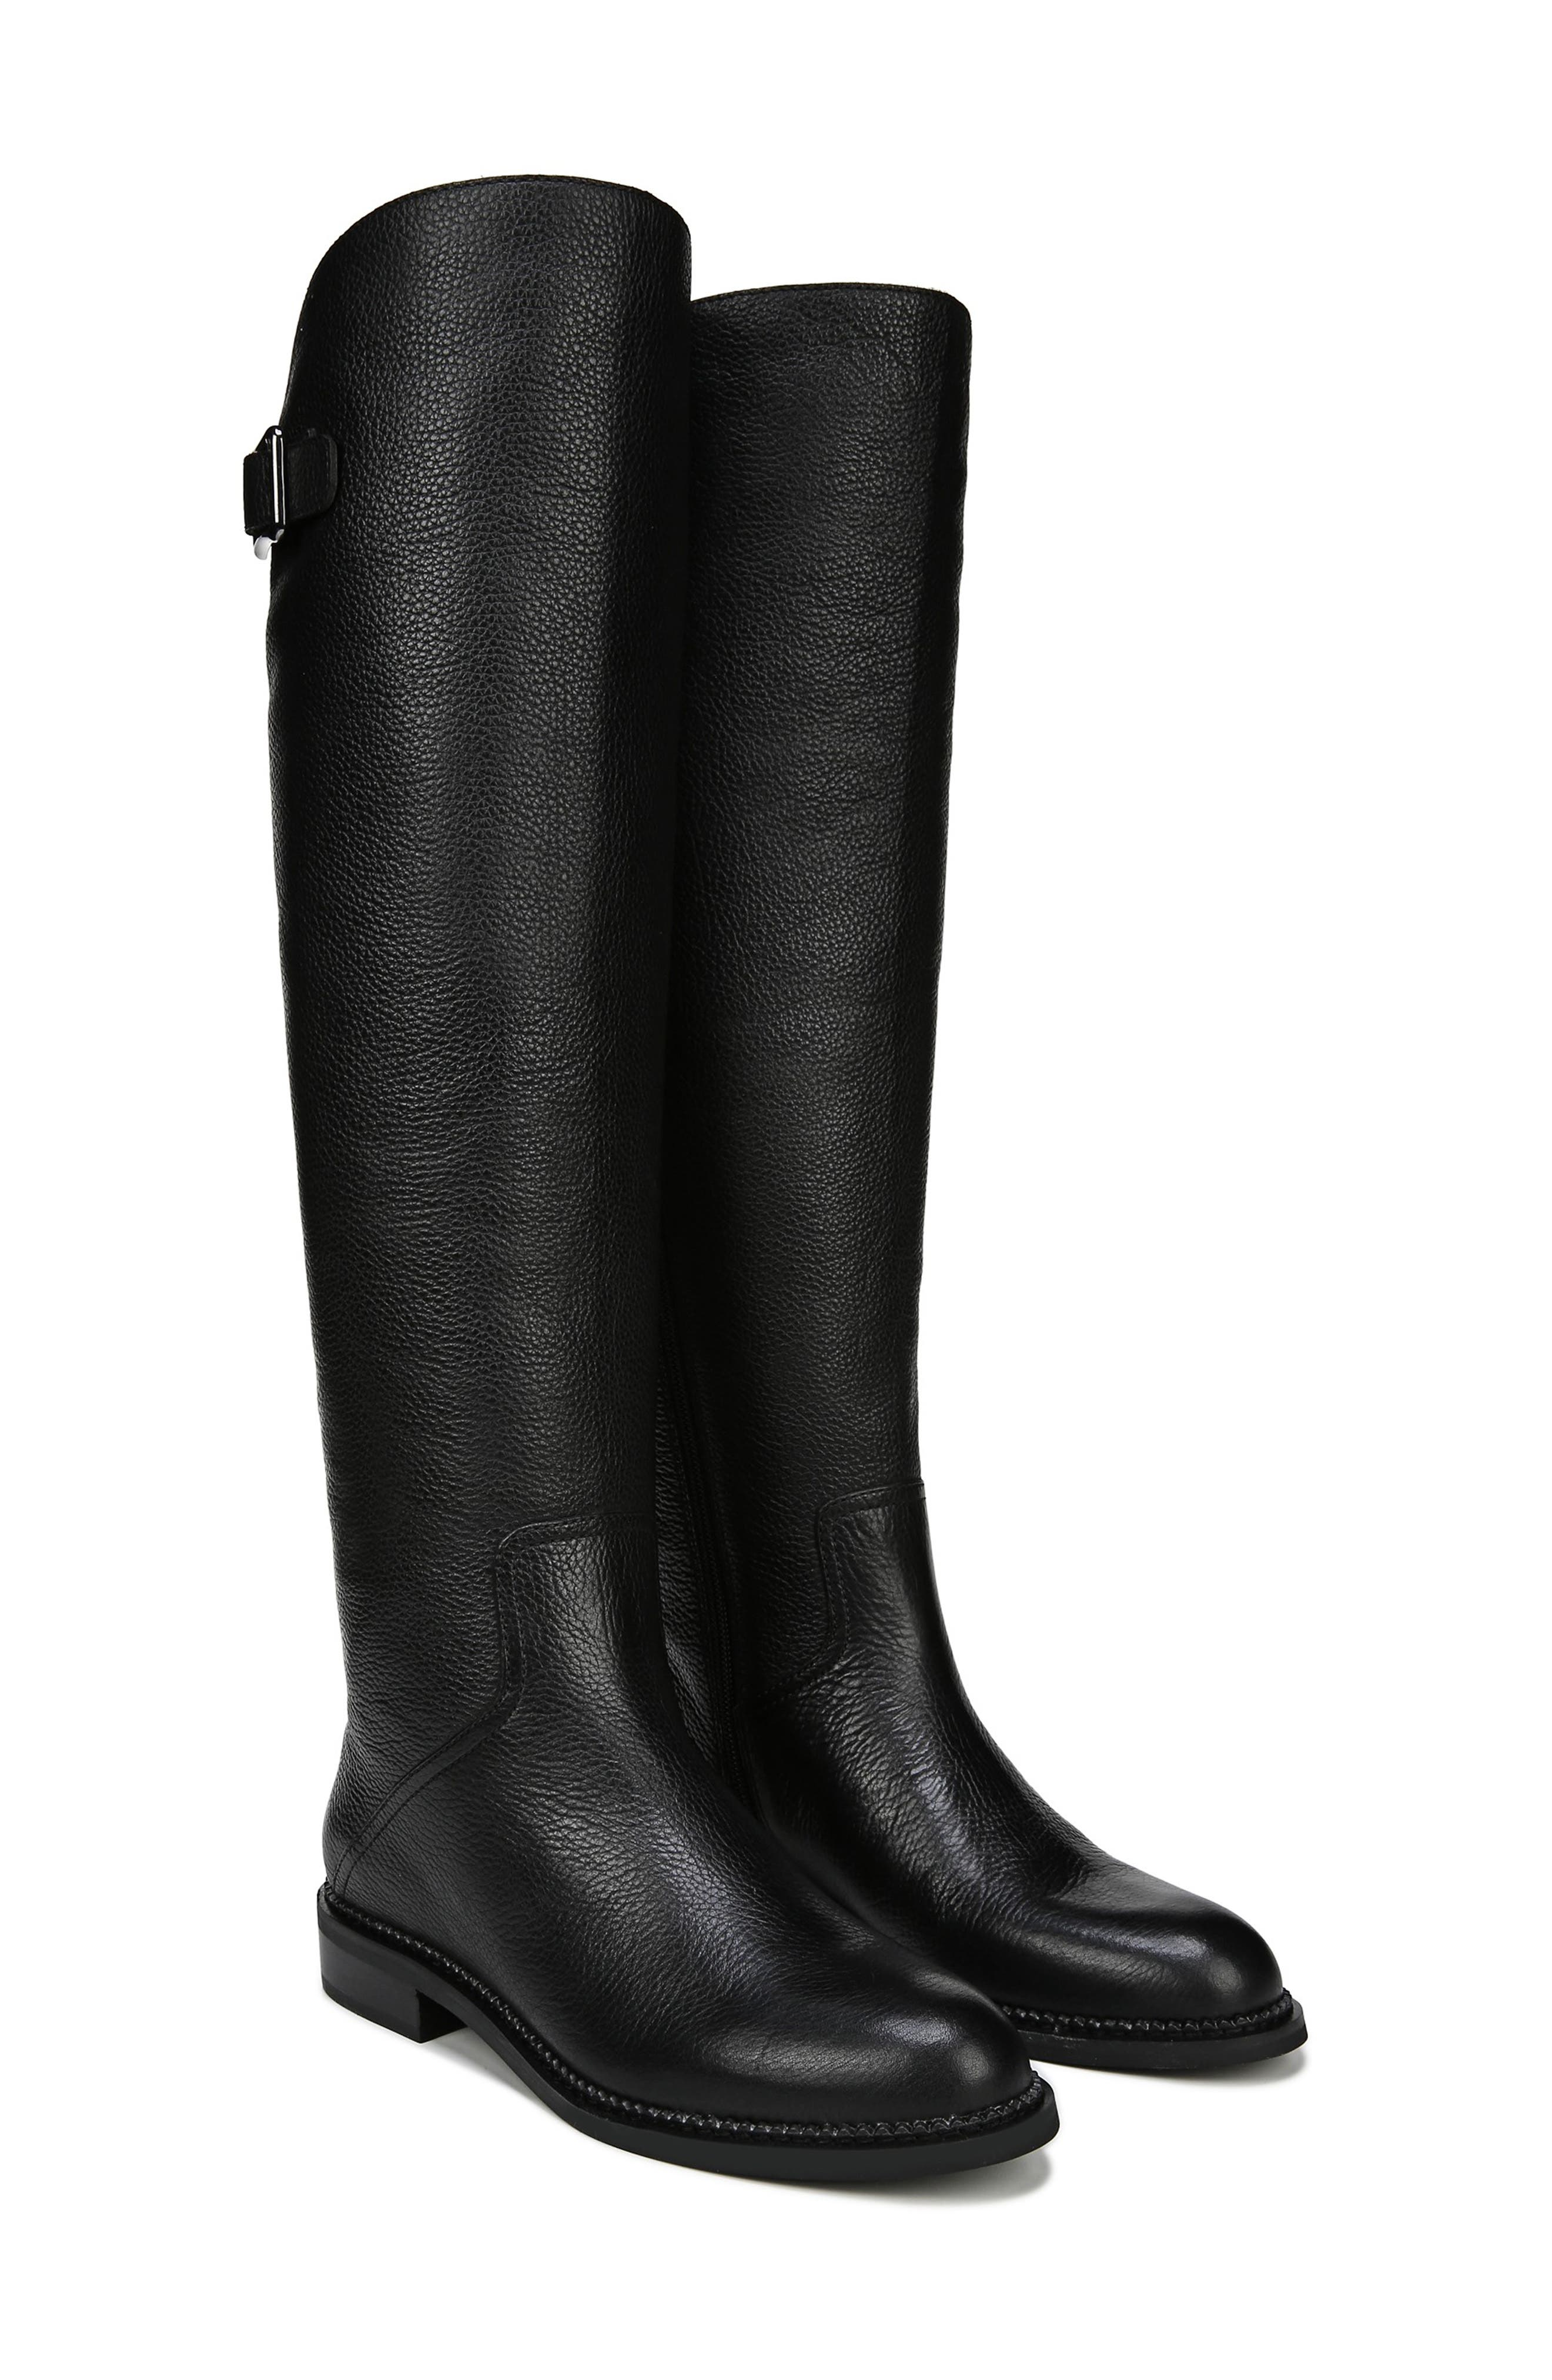 Halloway Knee High Boot,                             Alternate thumbnail 8, color,                             BLACK LEATHER